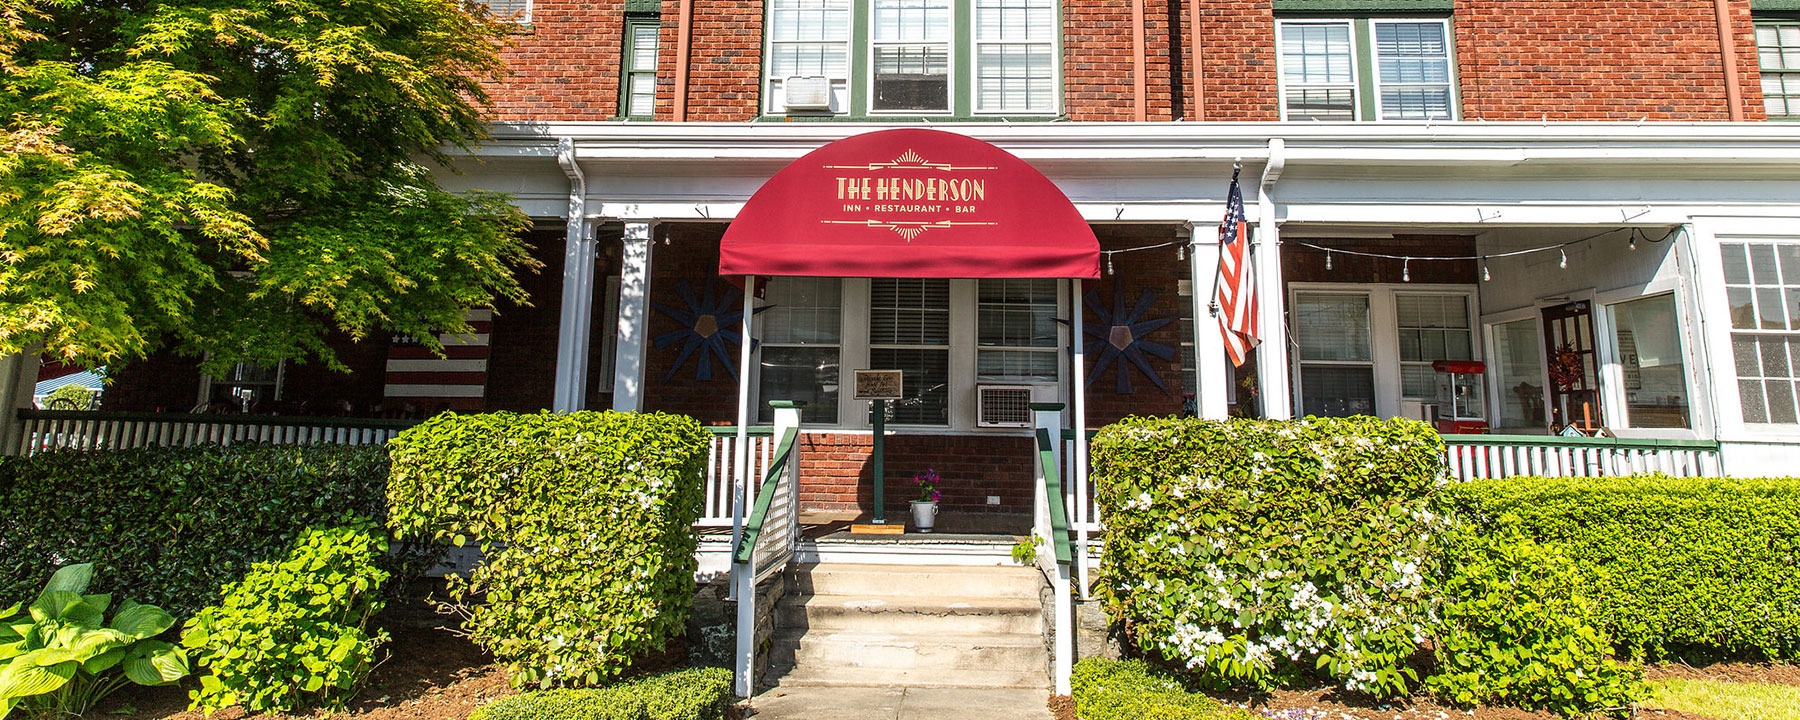 The Henderson Historic Bed Breakfast Downtown